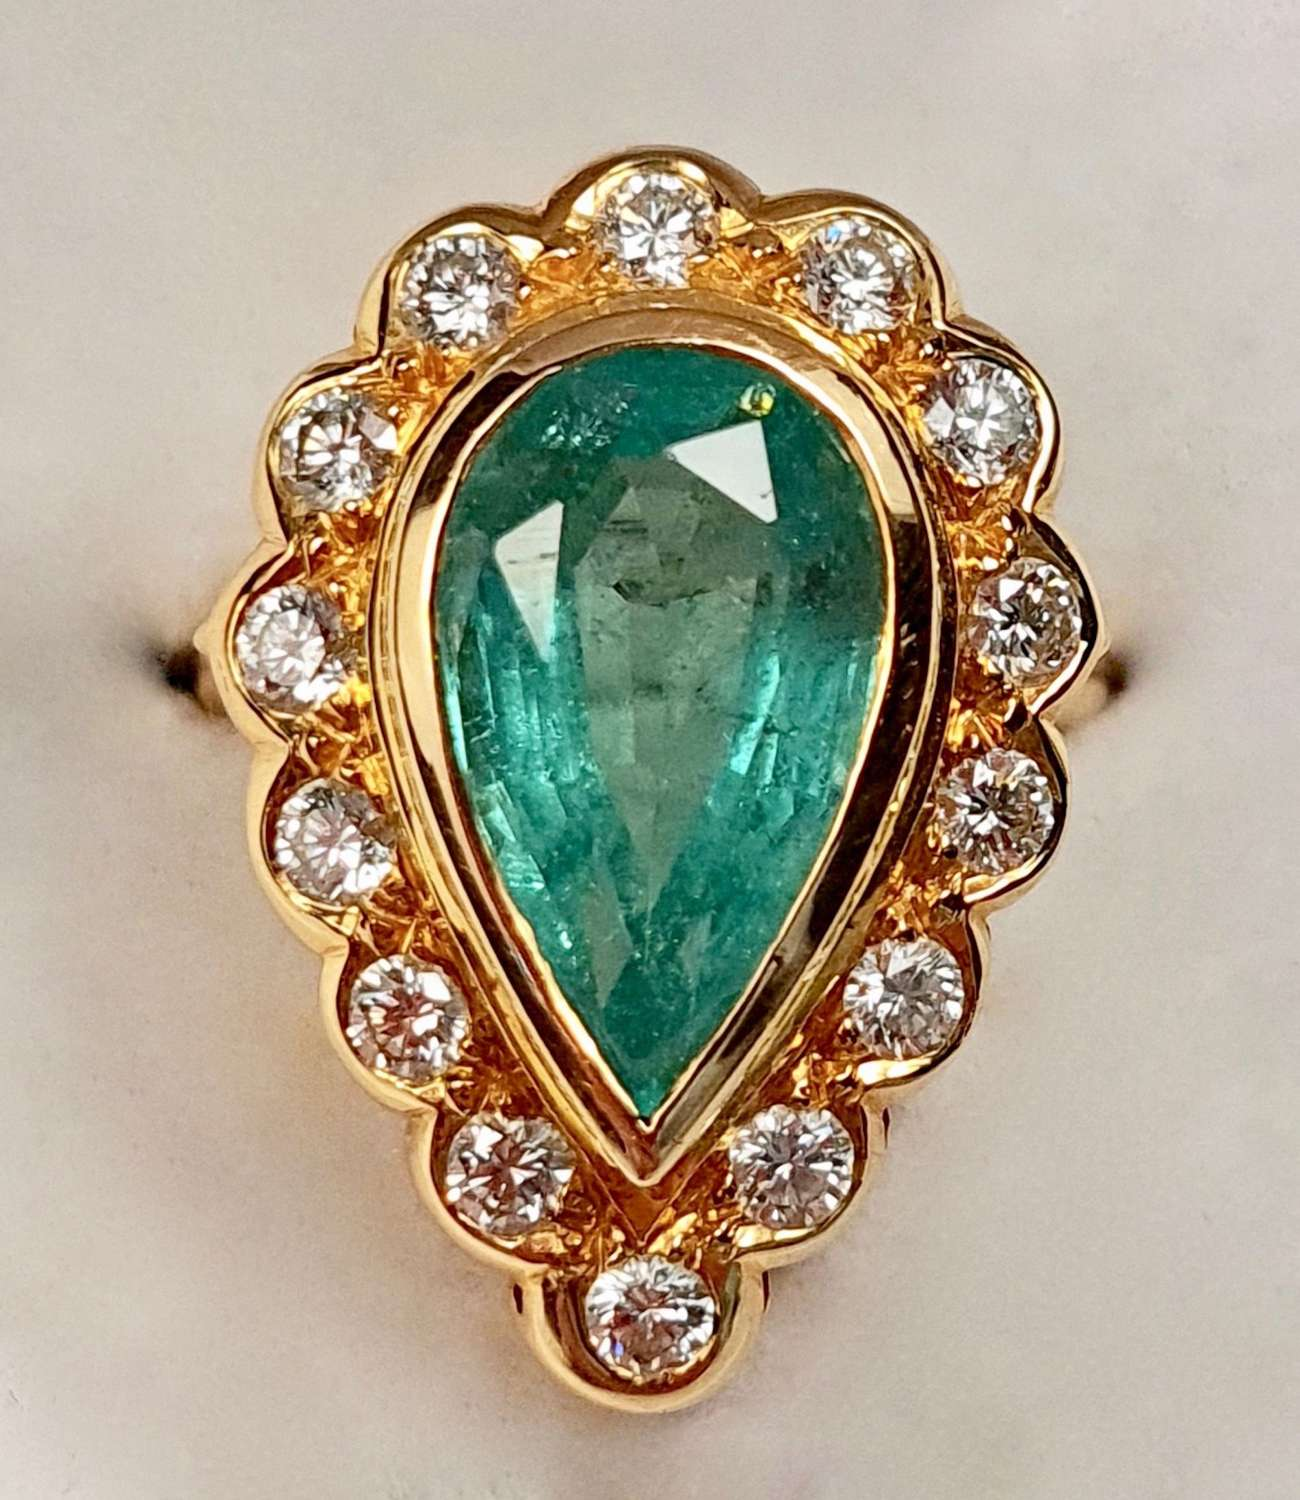 Large Pear Shaped Emerald Ring